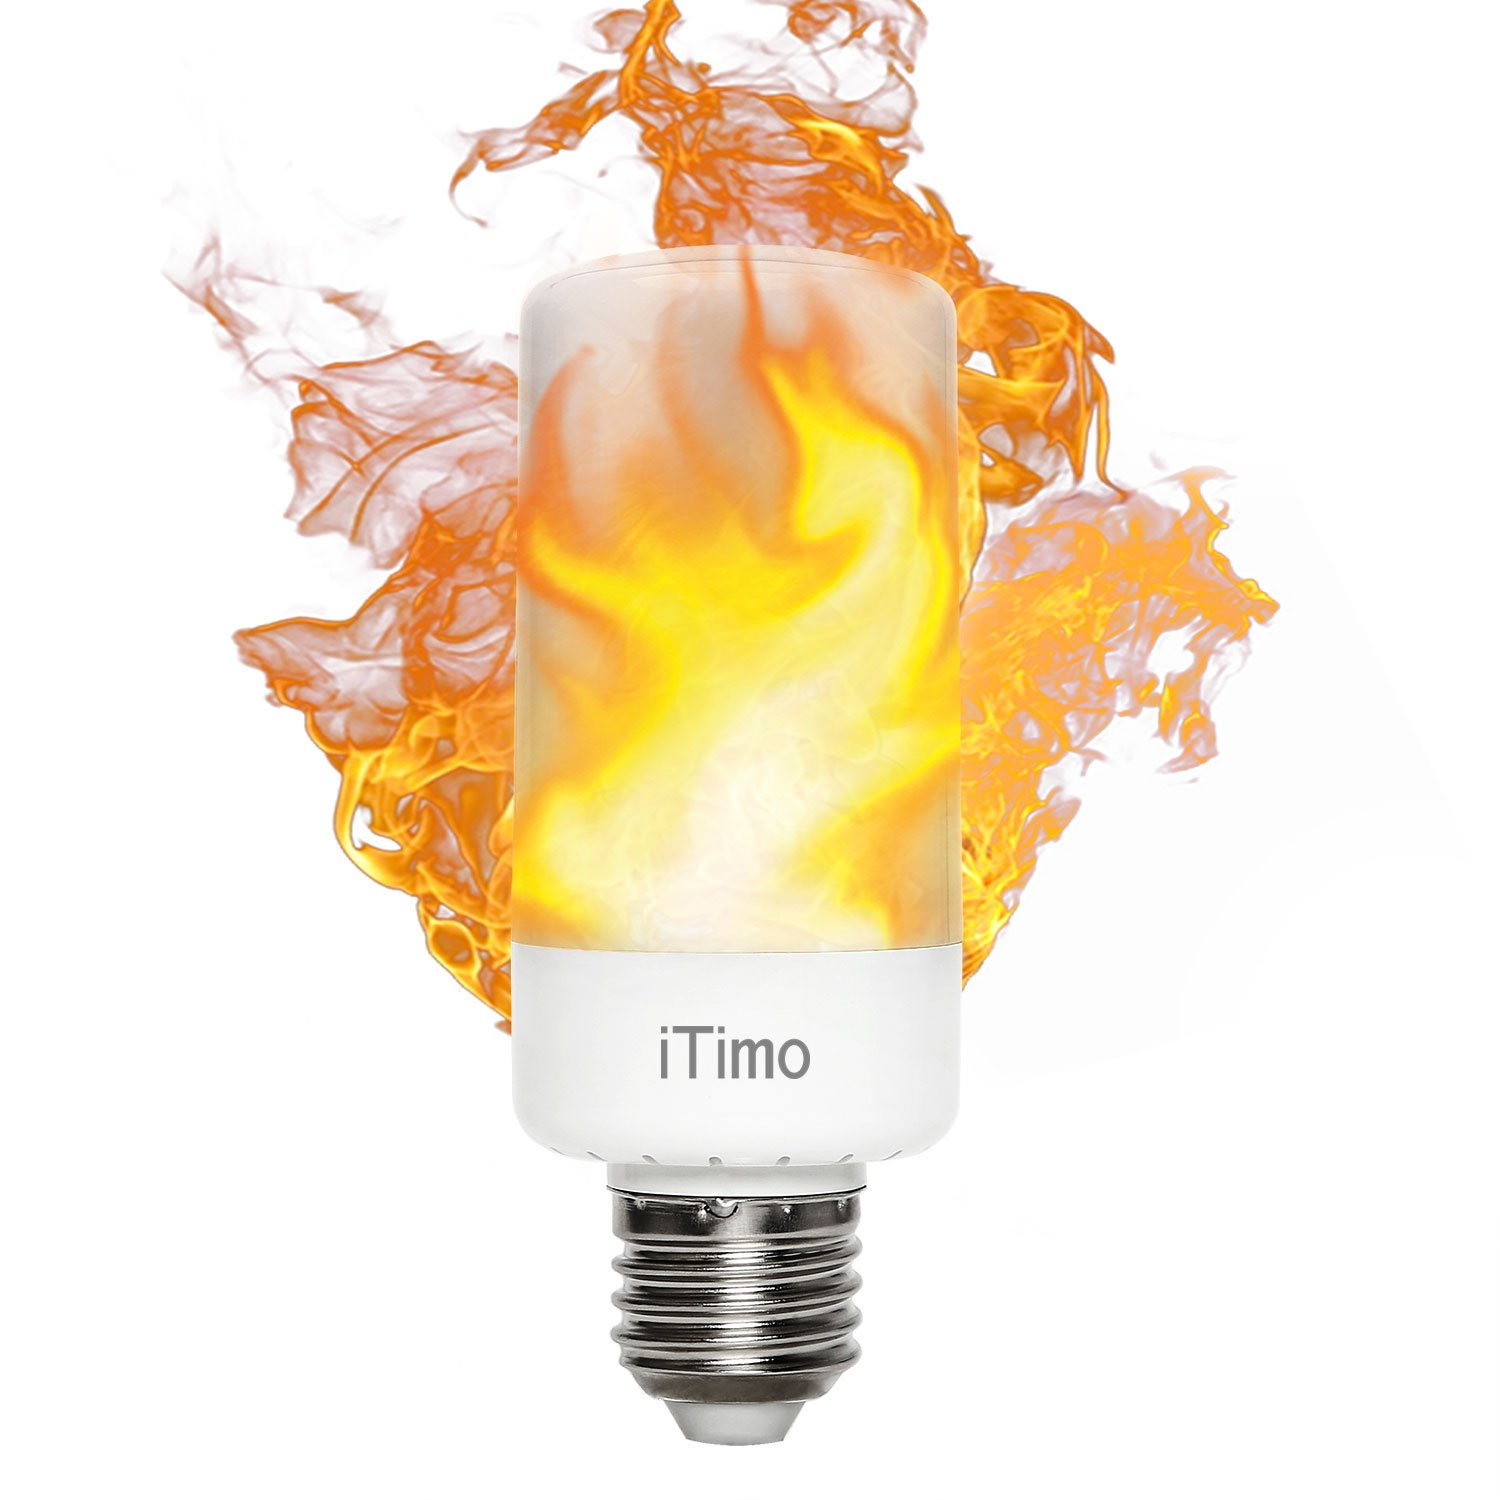 iTimo Led Flame Light Blub, 5w E26 Amber Simulated Fire Flickering Effect Lamp, 3 Modes Atmosphere Lighting For Home/Bar, Replacement of Porch Wall Desk Floor Lights Source